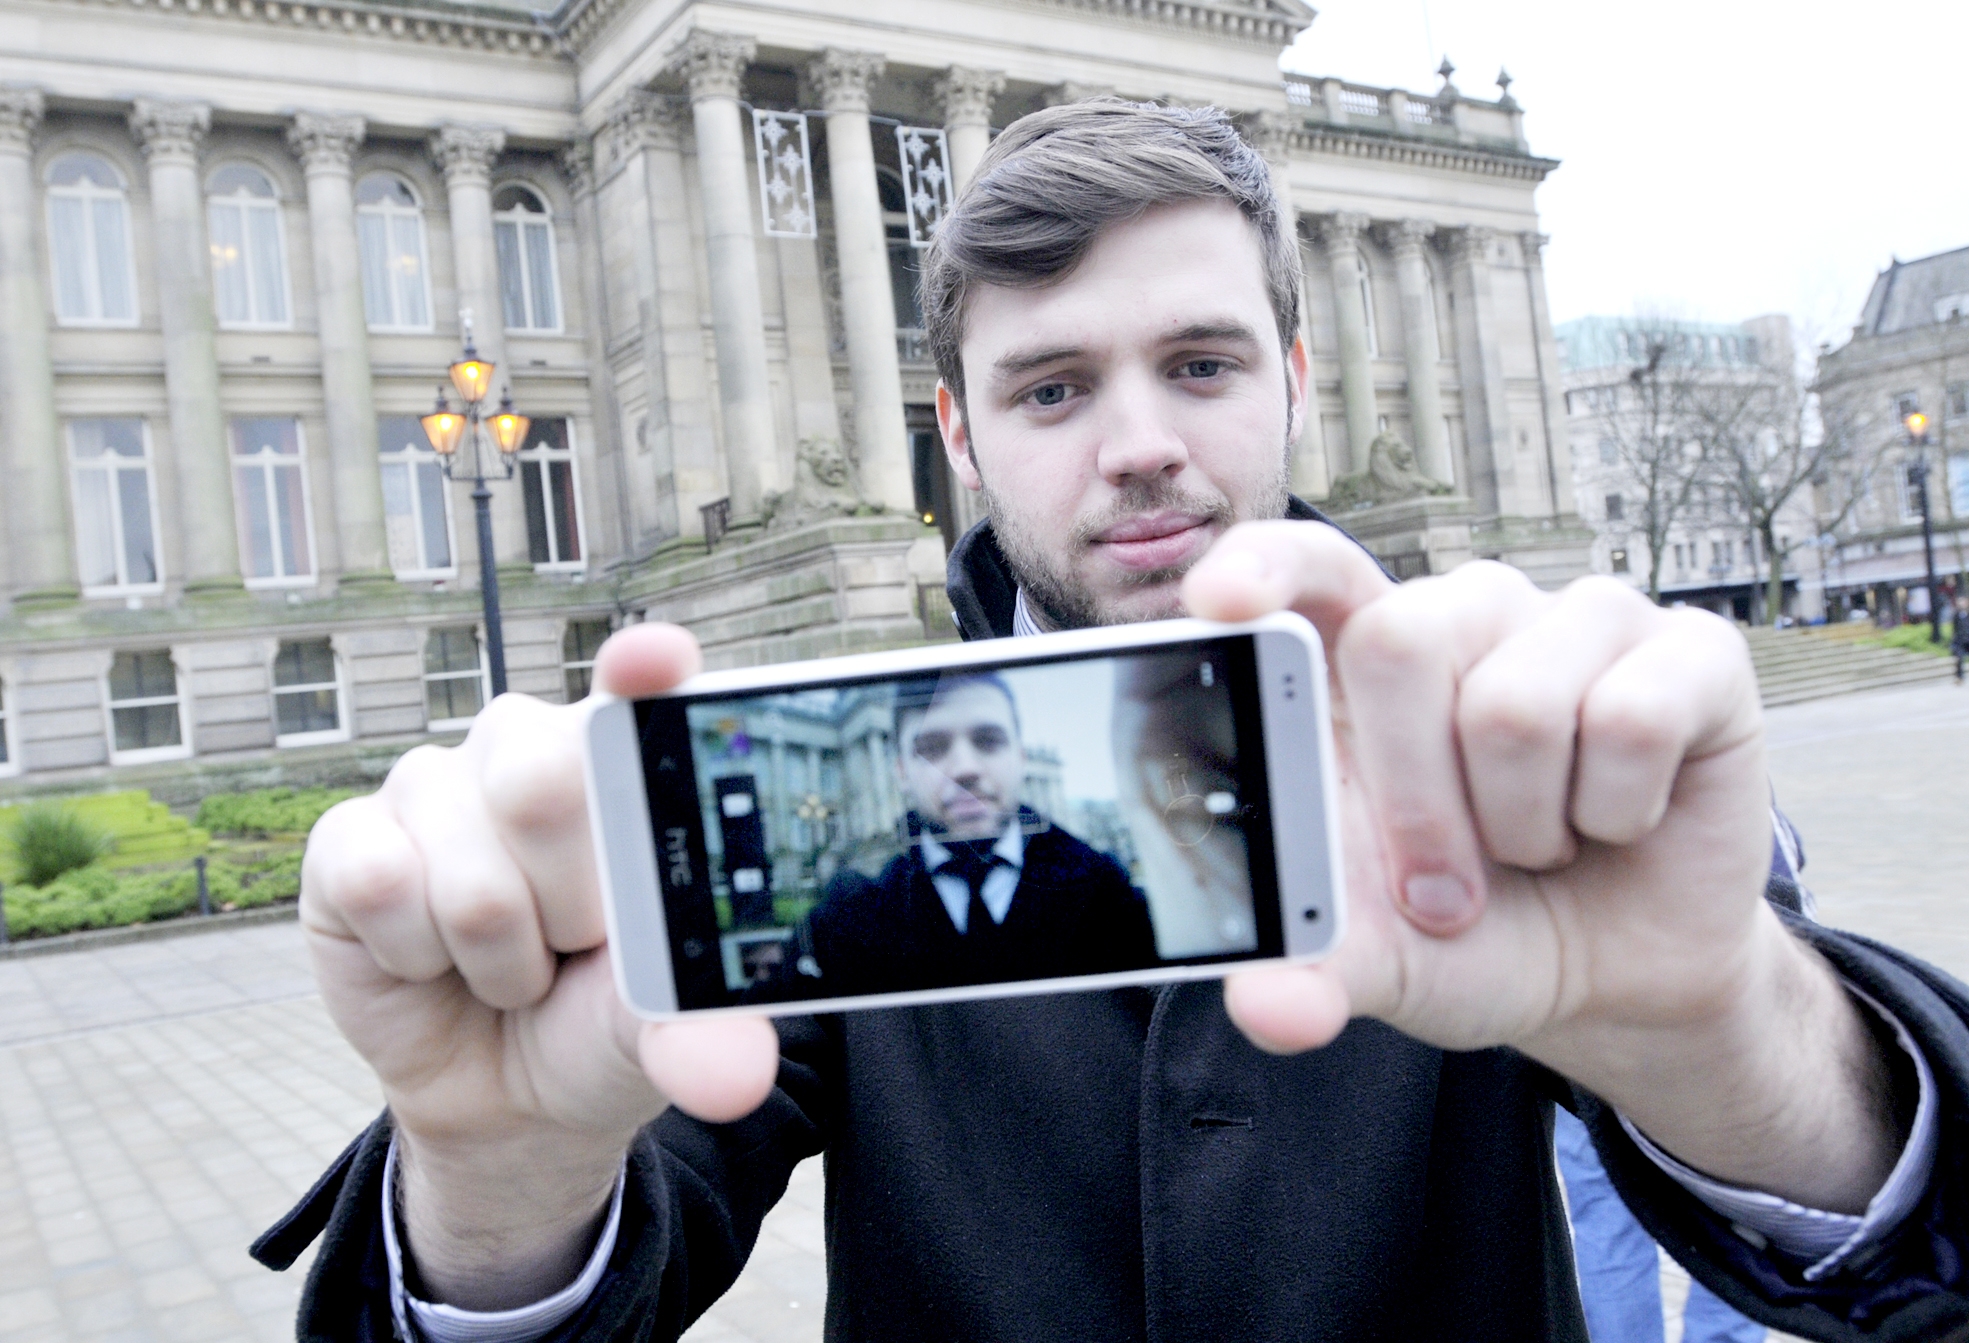 You've heard of the selfie - now try the new Bolton craze: the 'bolfie'